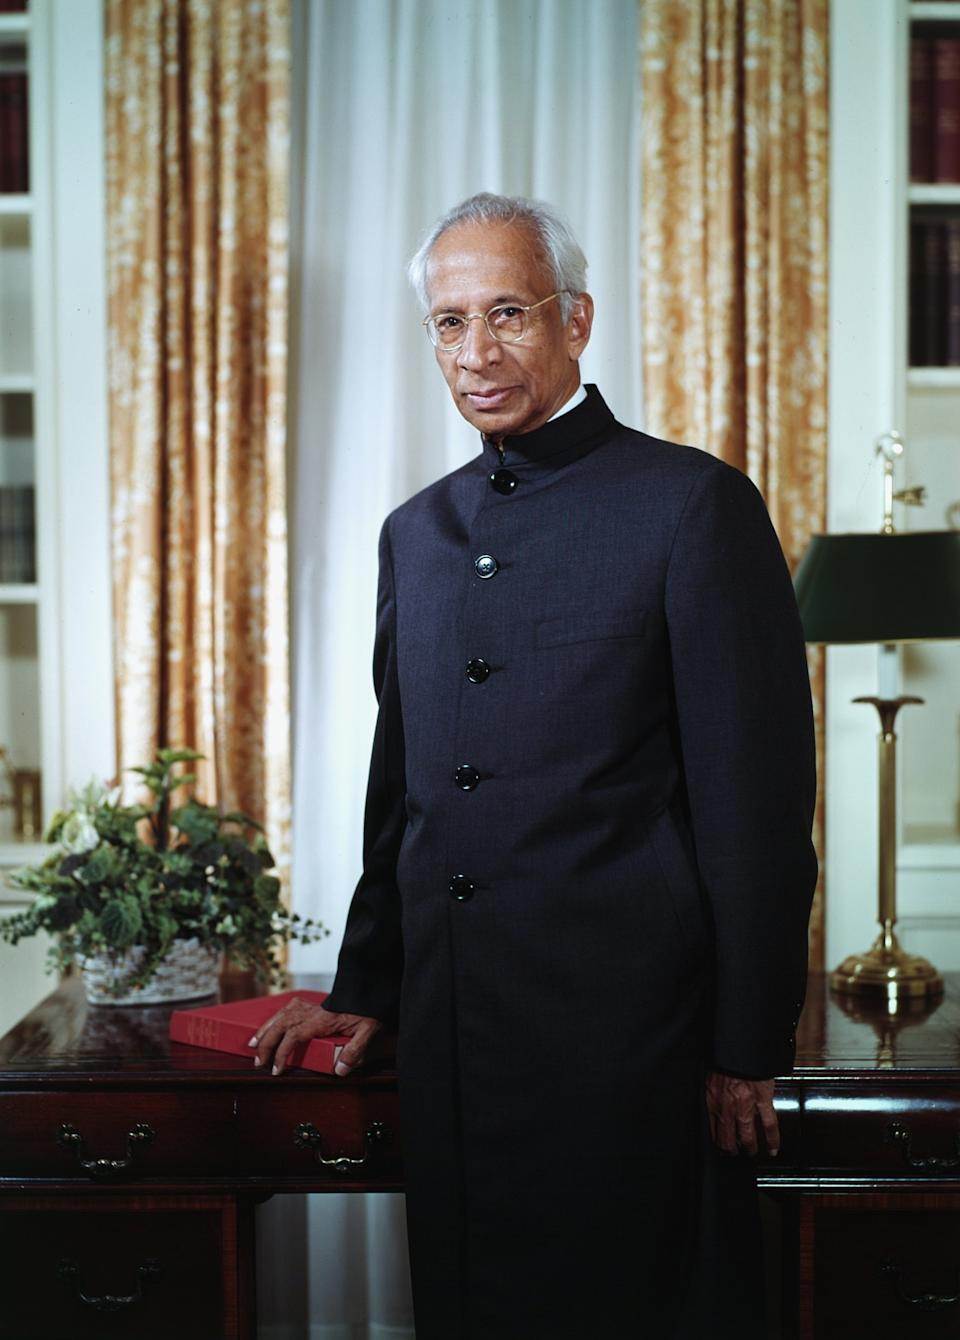 Sarvepalli Radhakrishnan was a statesman par excellence, and was India's first Vice President of India and the second President of of the nation. <em>Sarvapelli Radhakrishnan (1888 - 1975), the Indian statesman was the second President of India, serving from 1962 to 1967. Portrait in New York, 1963. (Photo by Bachrach/Getty Images)</em>